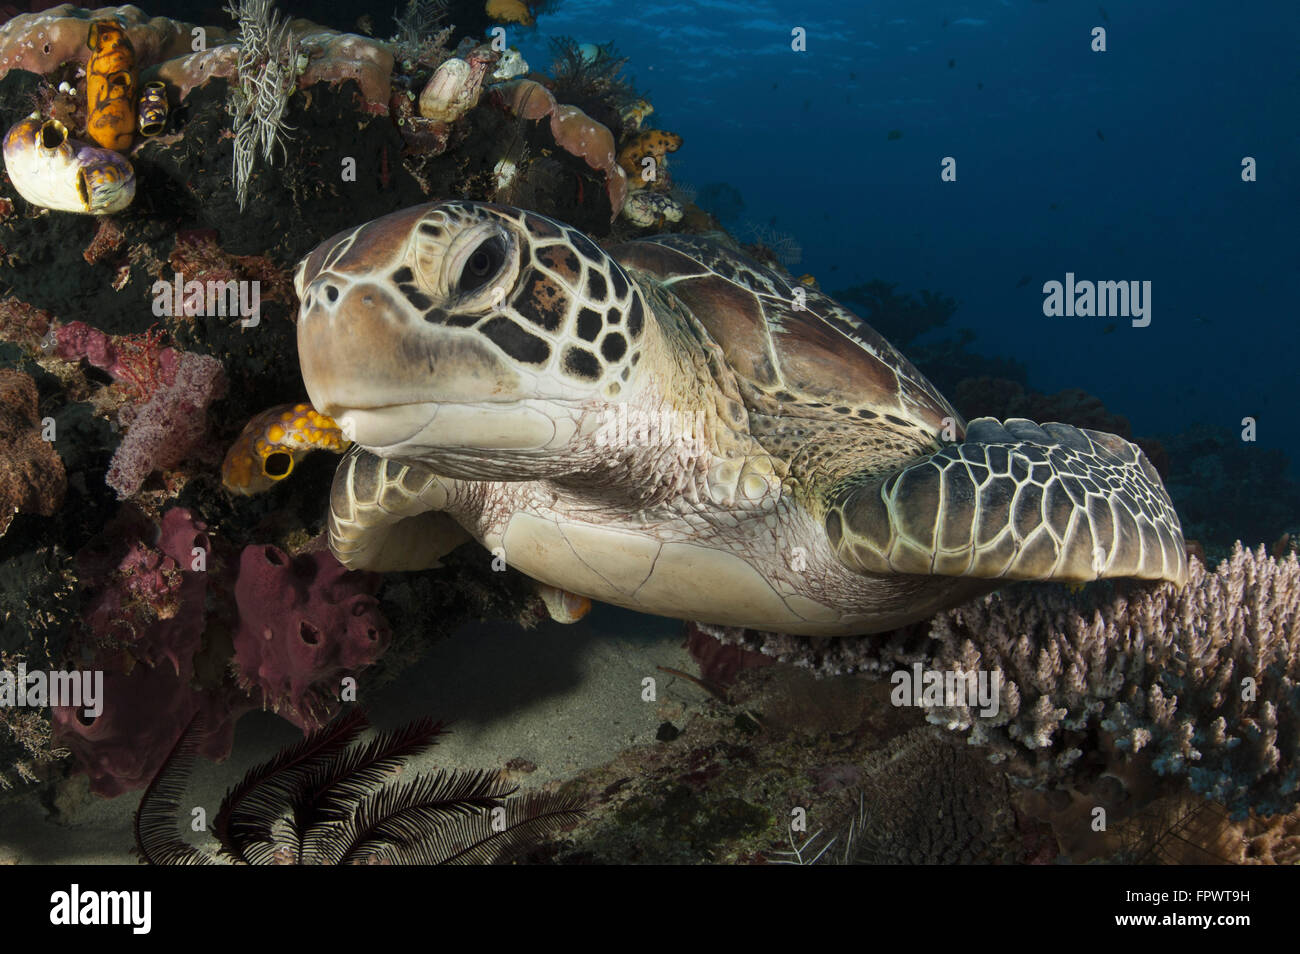 Close-up view of a green turtle (Chelonia mydas) resting on a reef top in Komodo National Park, Indonesia. Stock Photo